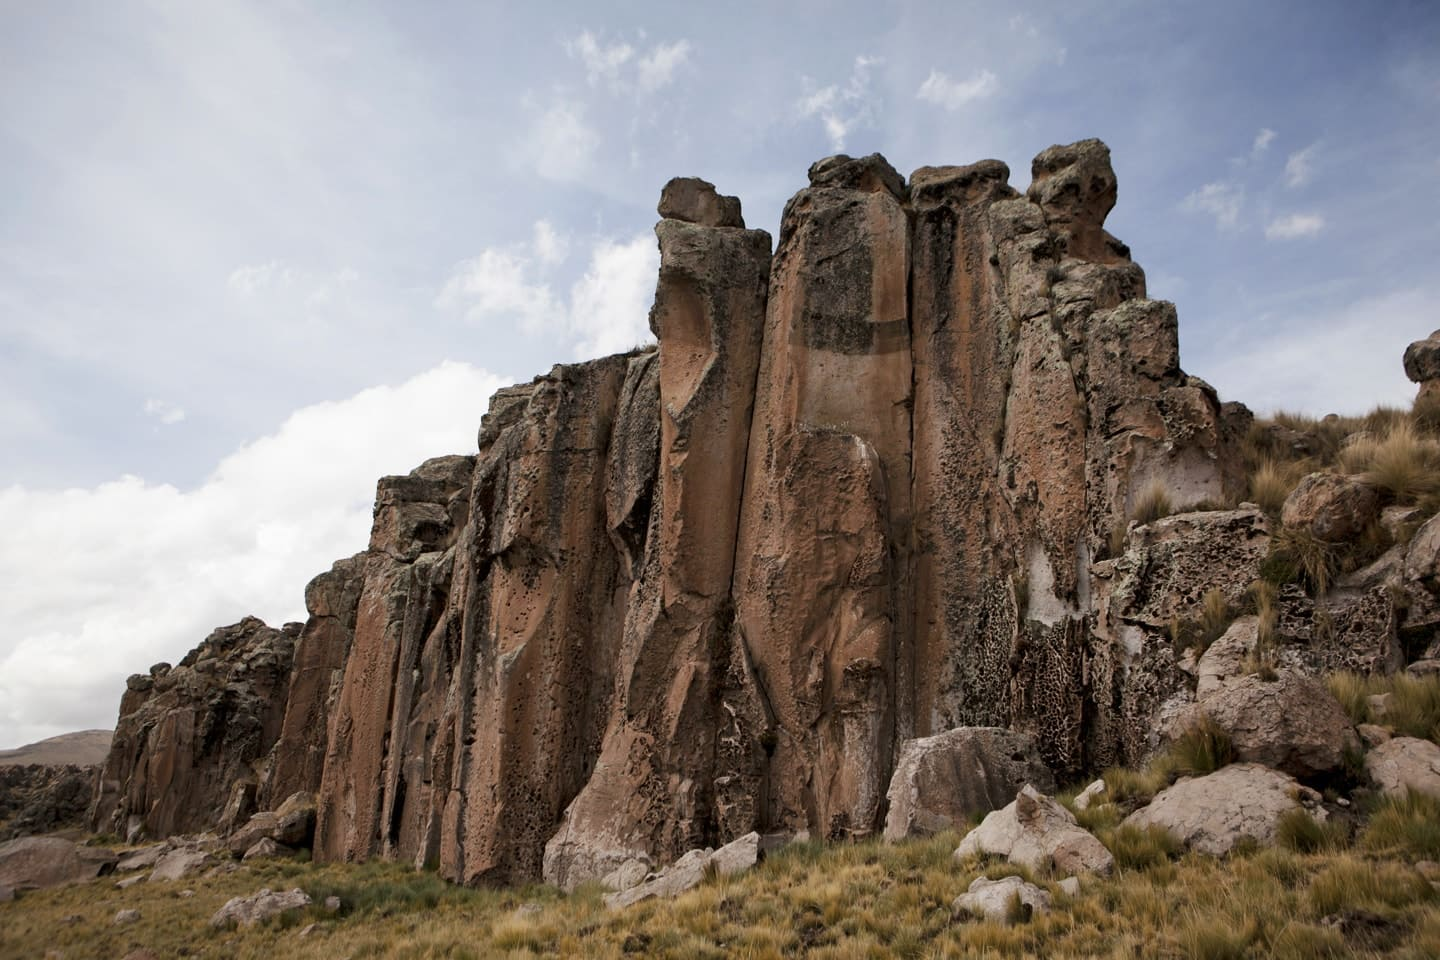 Large rock formations by erosion of wind, rainwater and ice located in Callalli zone in the route Chivay to Cusco - Peru with Bus 4M Express